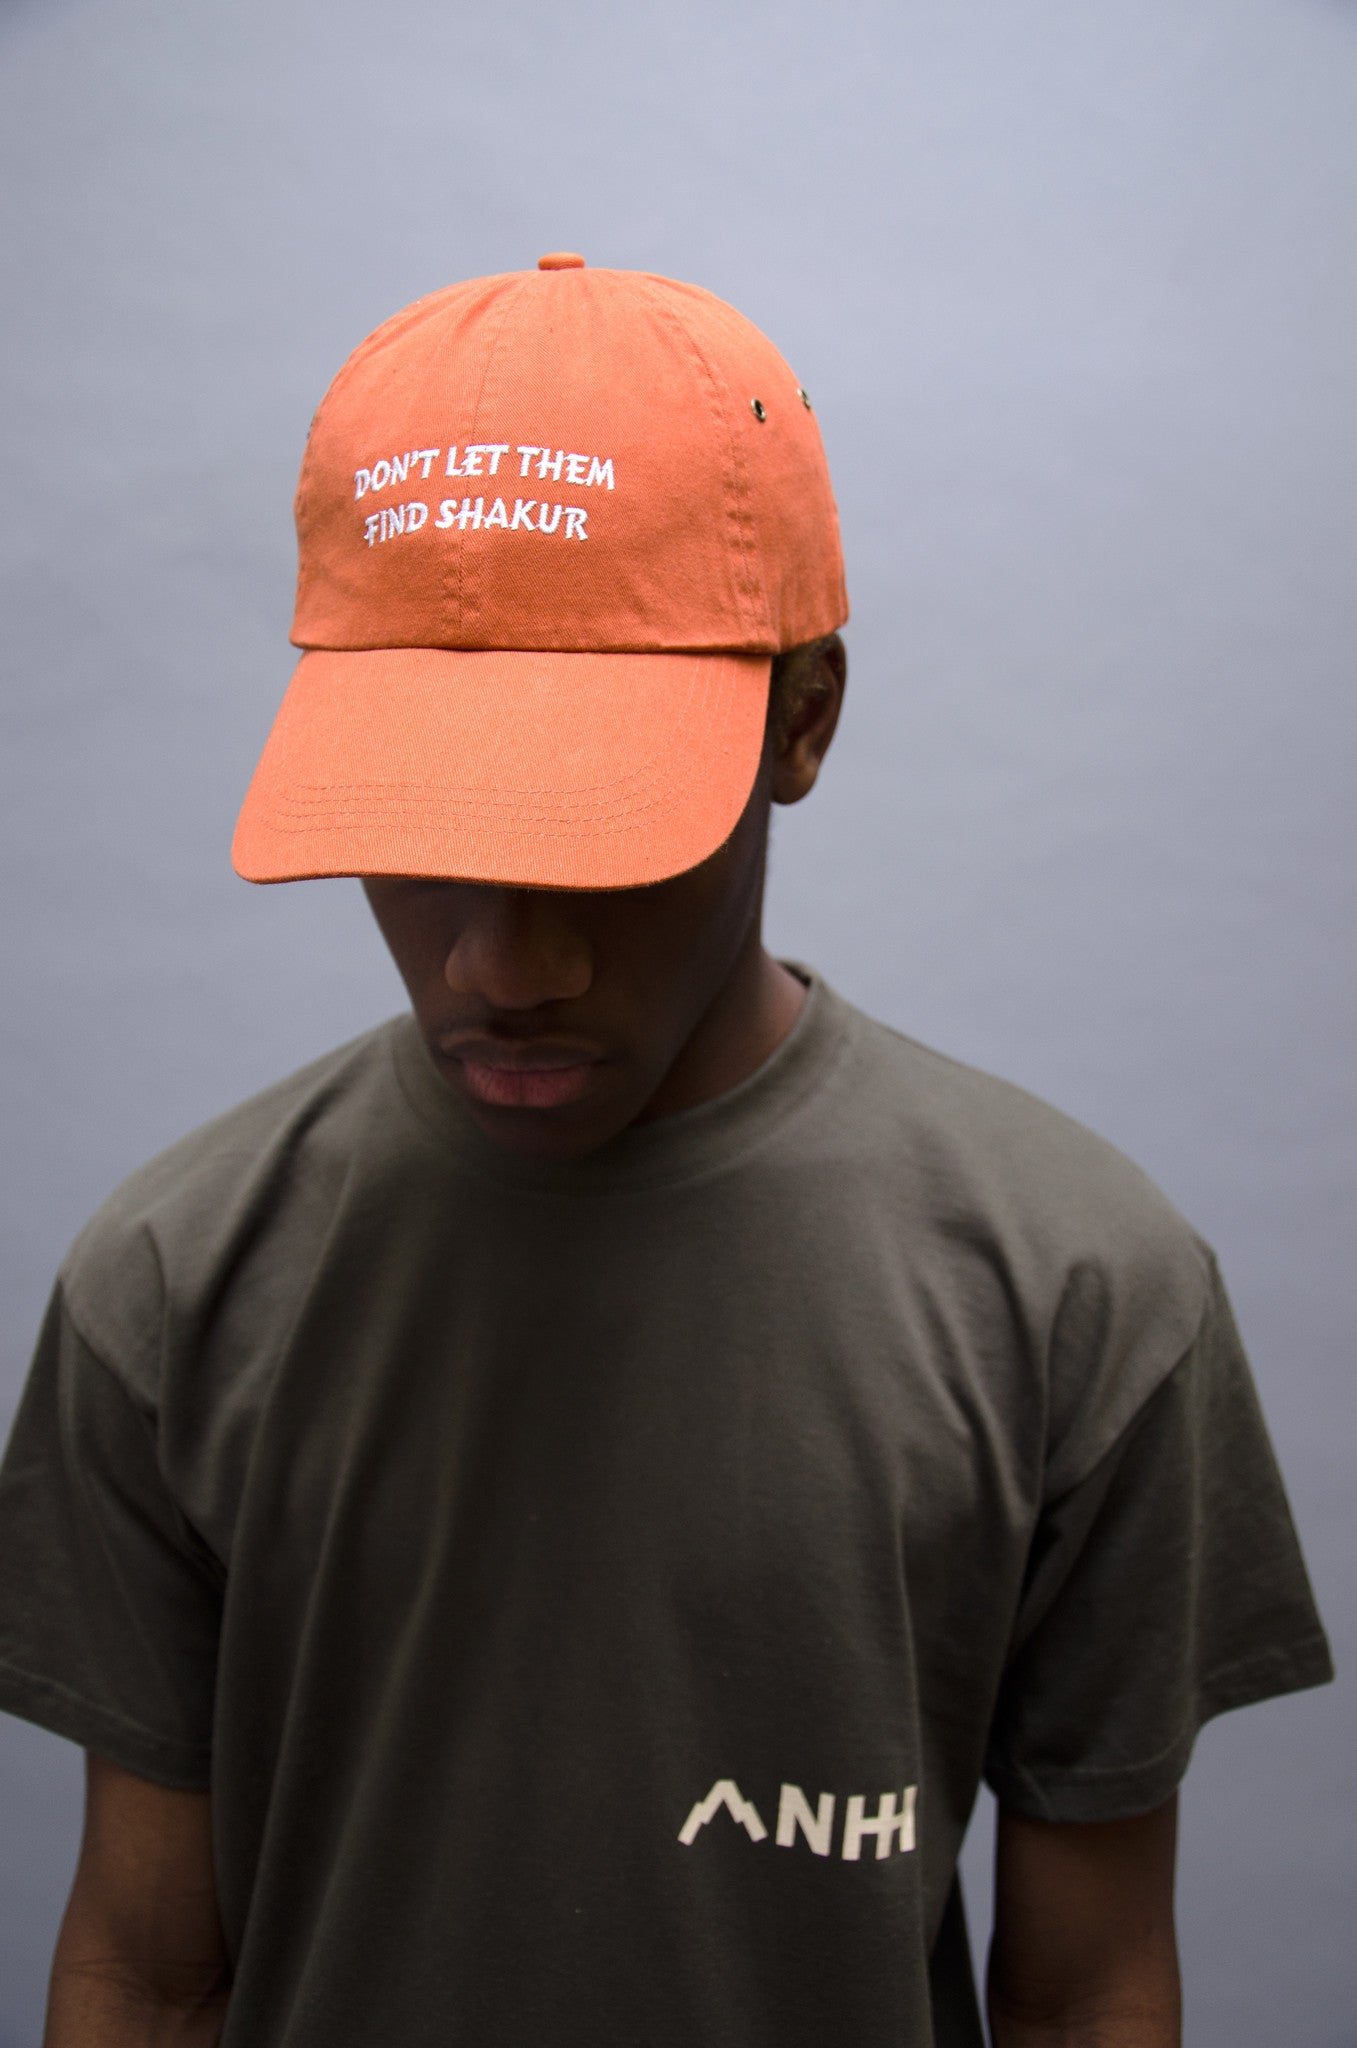 The North Hill Orange Shakur Hat is a made in France cap